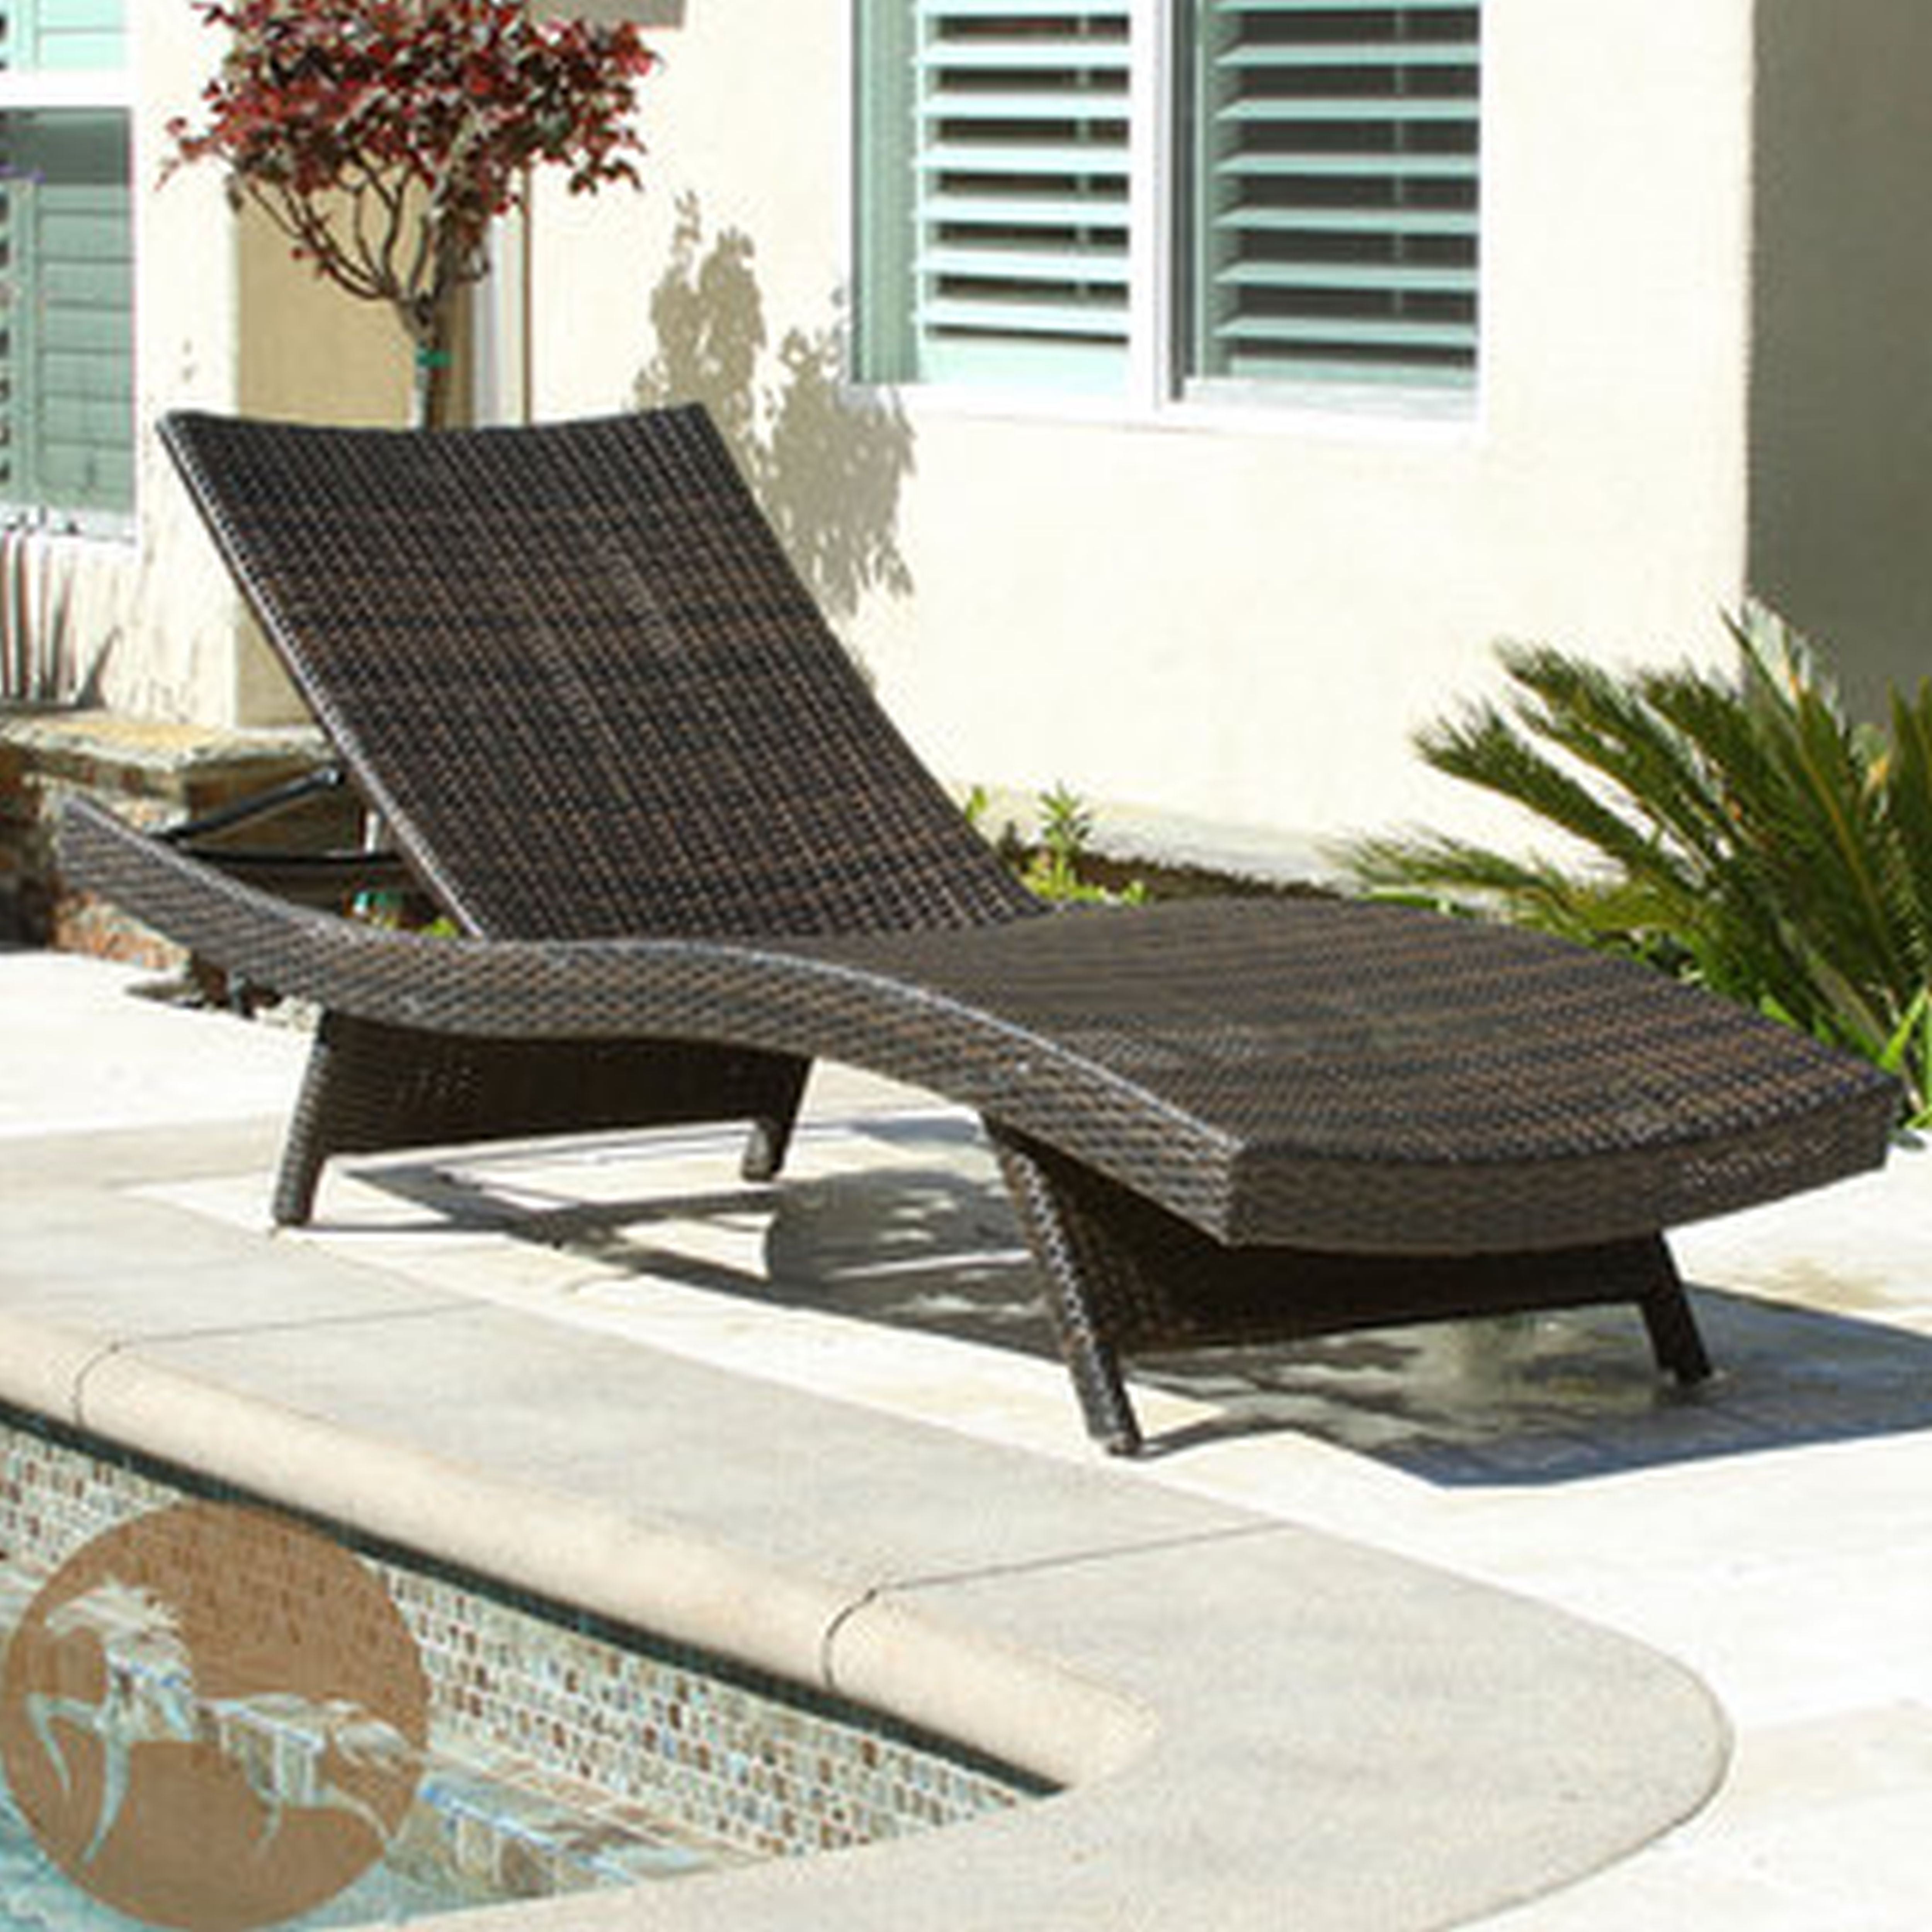 Well Known Chaise Lounge Chairs For Poolside Intended For Outdoor : Patio Chaise Lounge Chairs Pool Lounge Chairs Chaise (View 12 of 15)